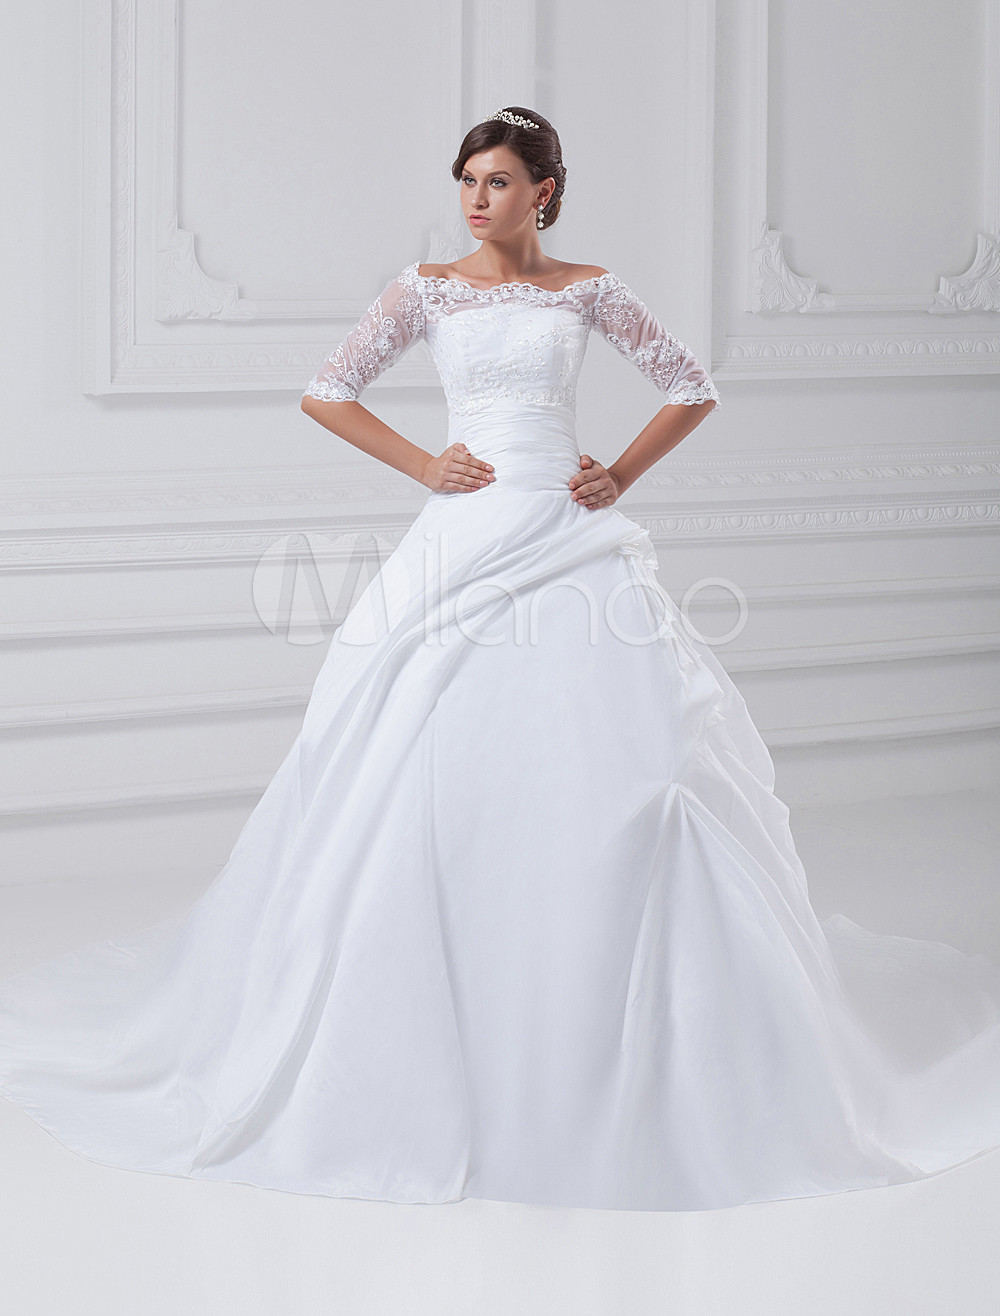 White Ball Gown Strapless Beading Taffeta Bridal Wedding Gown